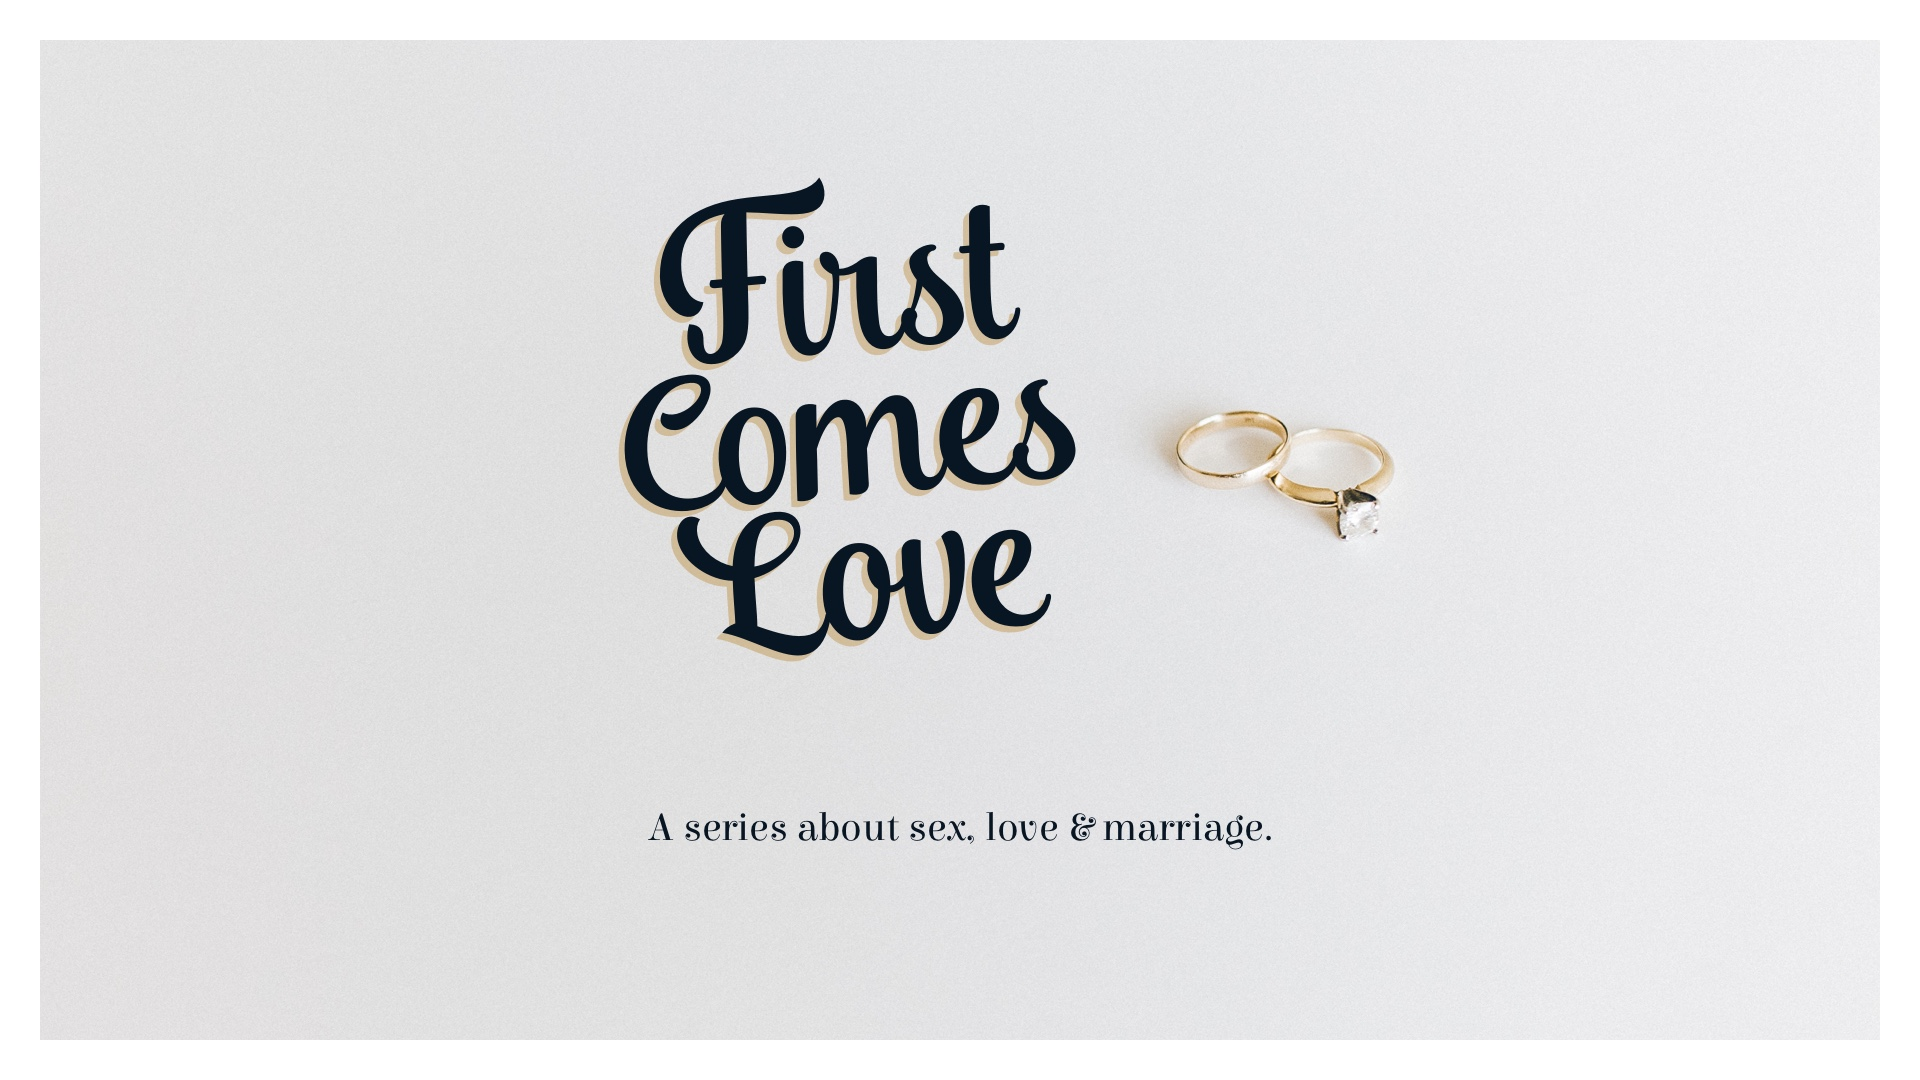 FirstComesLove-HD.jpg